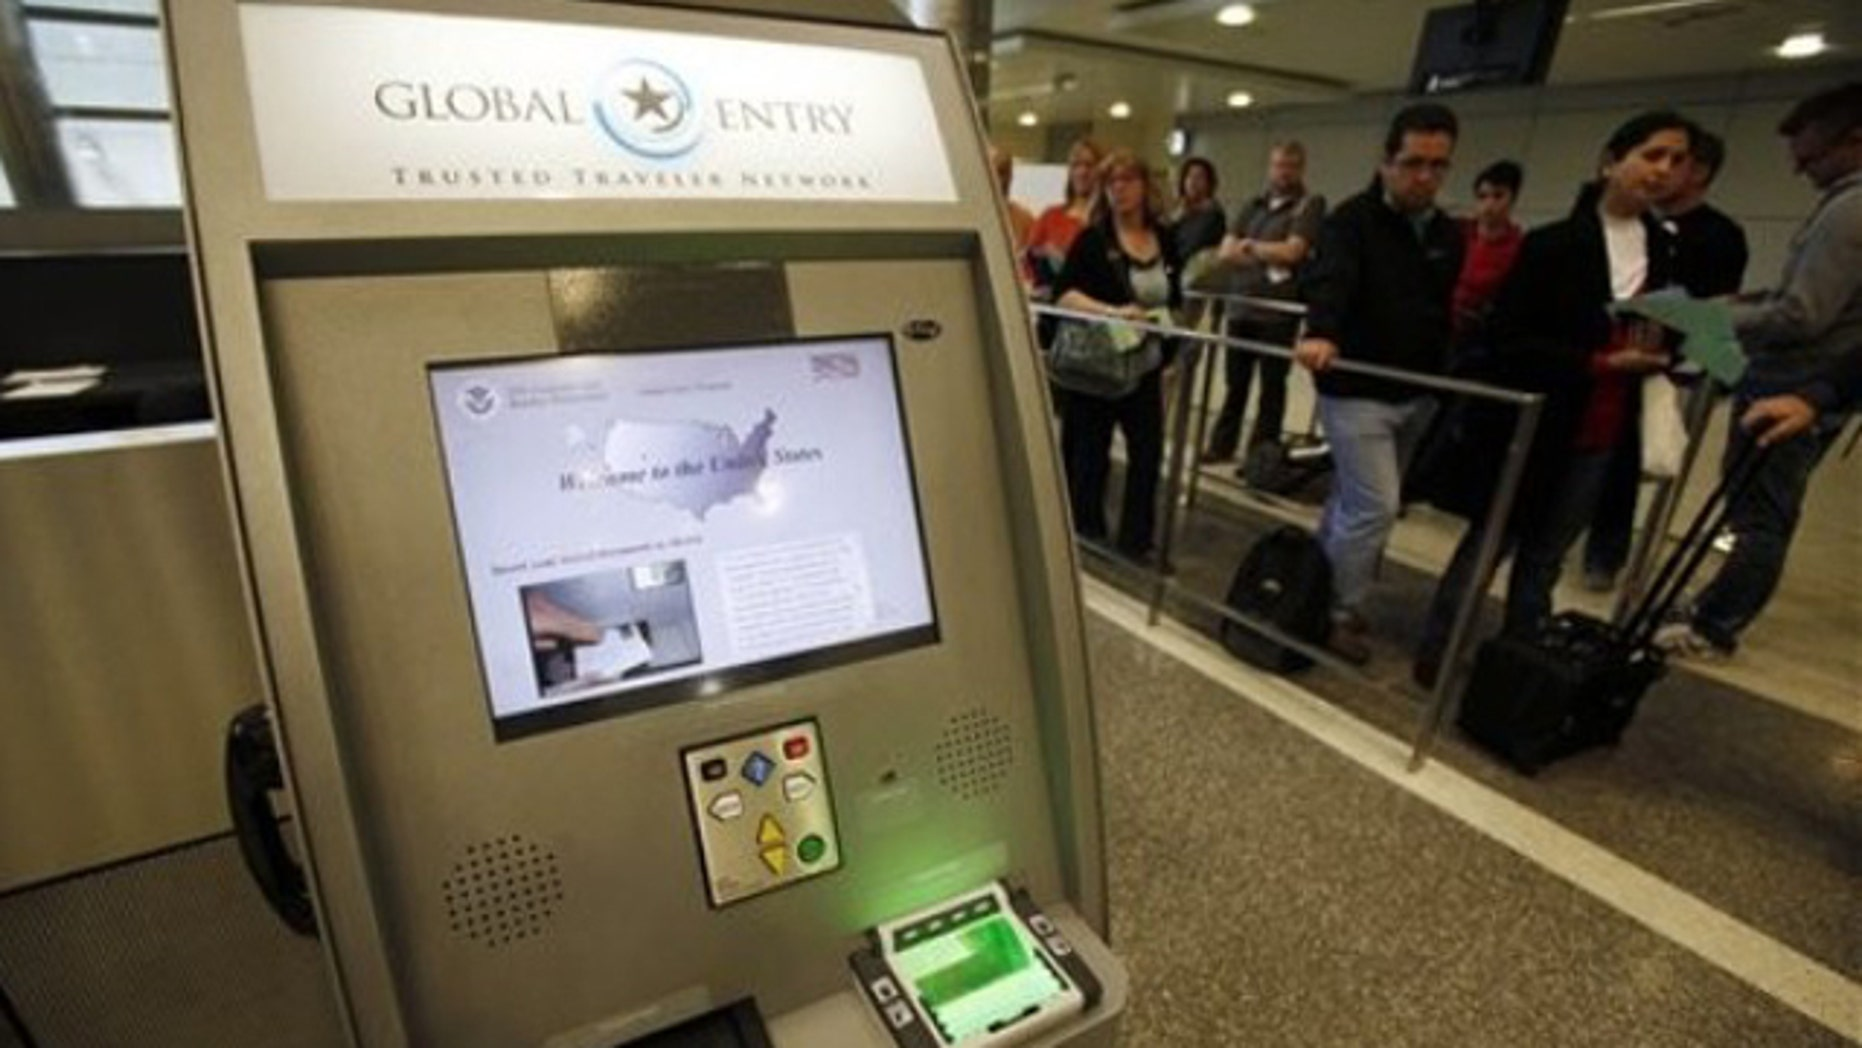 A Global Entry Trusted Traveler Network kiosk awaits arriving international passengers who are registered for the service at the newly-renovated customs clearance area at the Tom Bradley International Terminal at Los Angeles International Airport. (AP Photo/Reed Saxon)